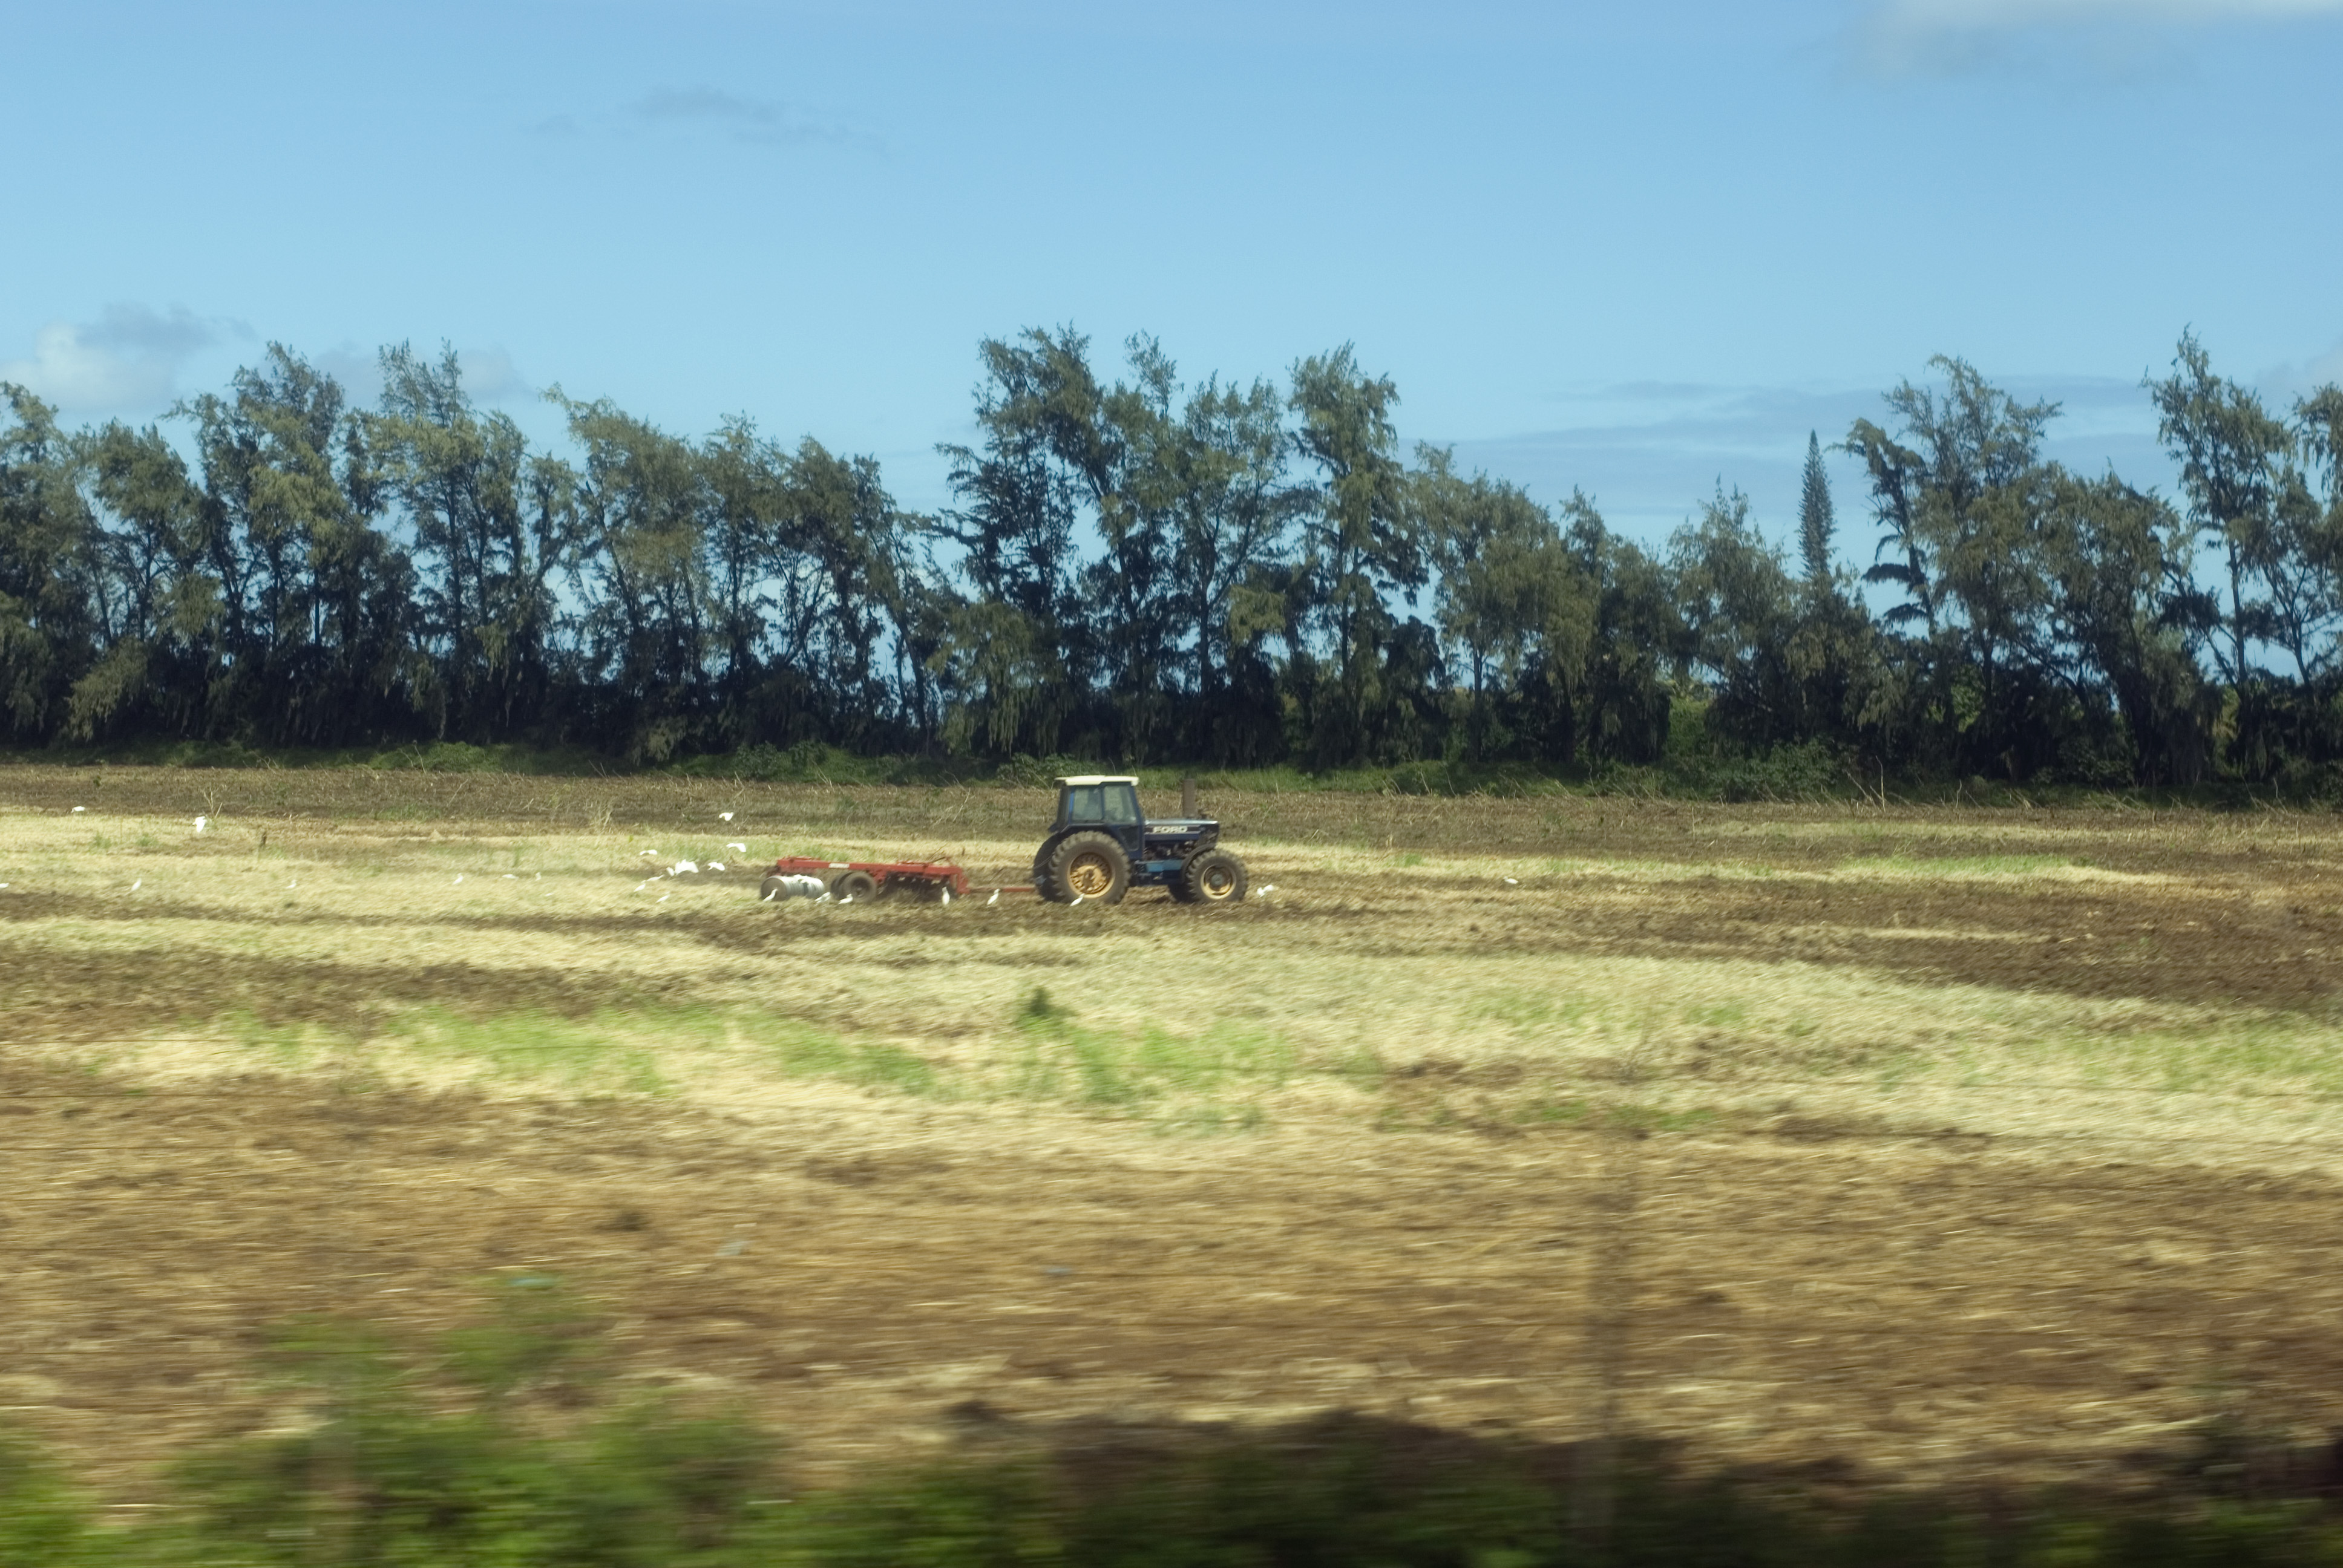 a tractor pulling a plough through a field